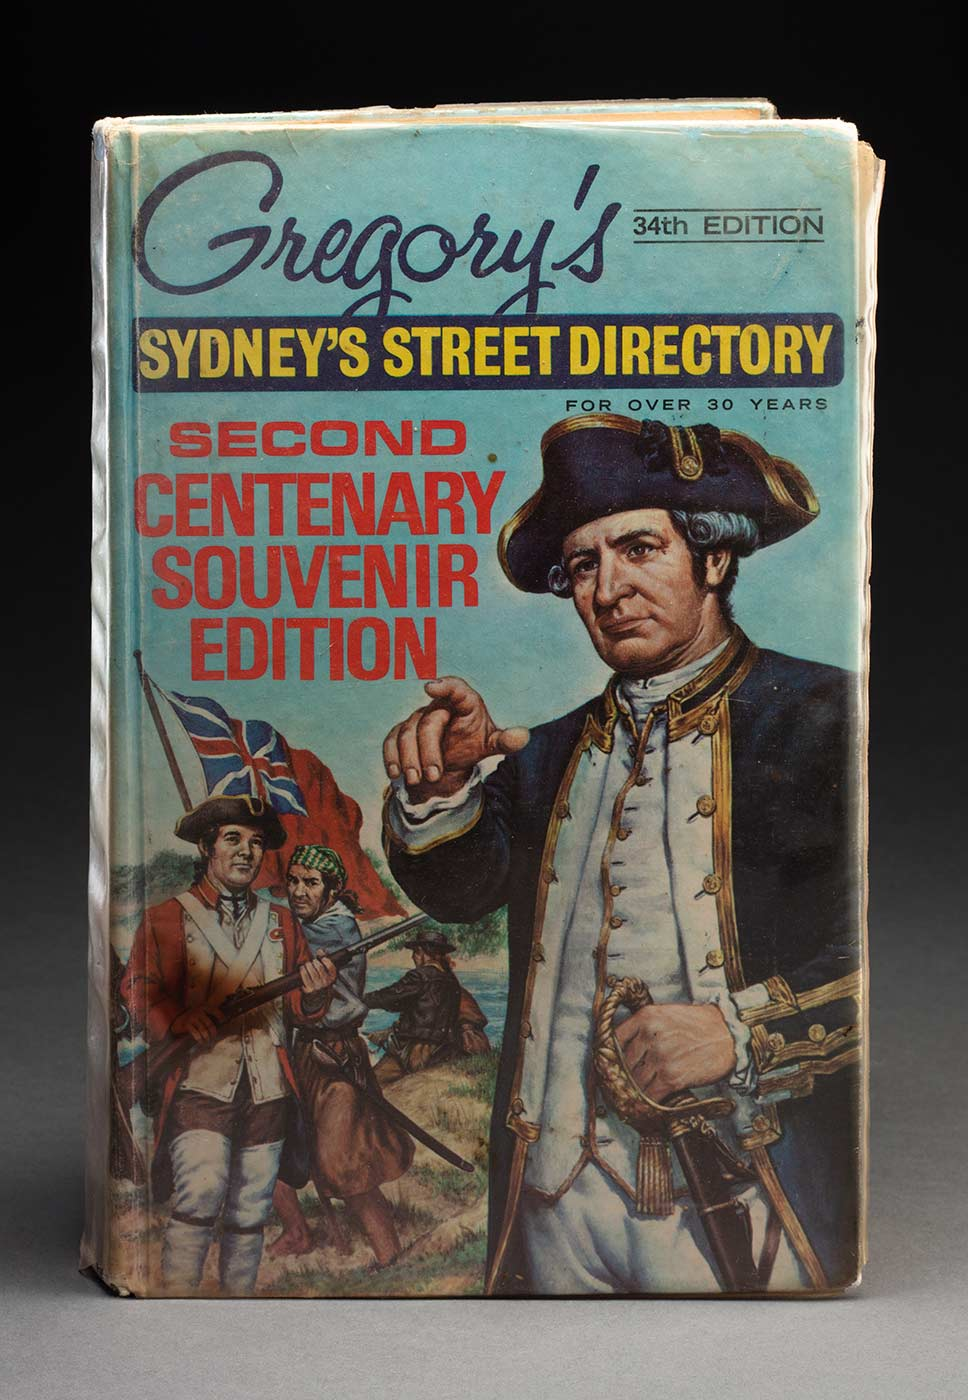 Gregory's 34th edition 'Sydney's Street Directory', second centenary souvenir edition. The front cover features a colour image with Captain Cook in the foreground on the right, and several other men with a flag in the background on the left. The cover has a plastic jacket. - click to view larger image